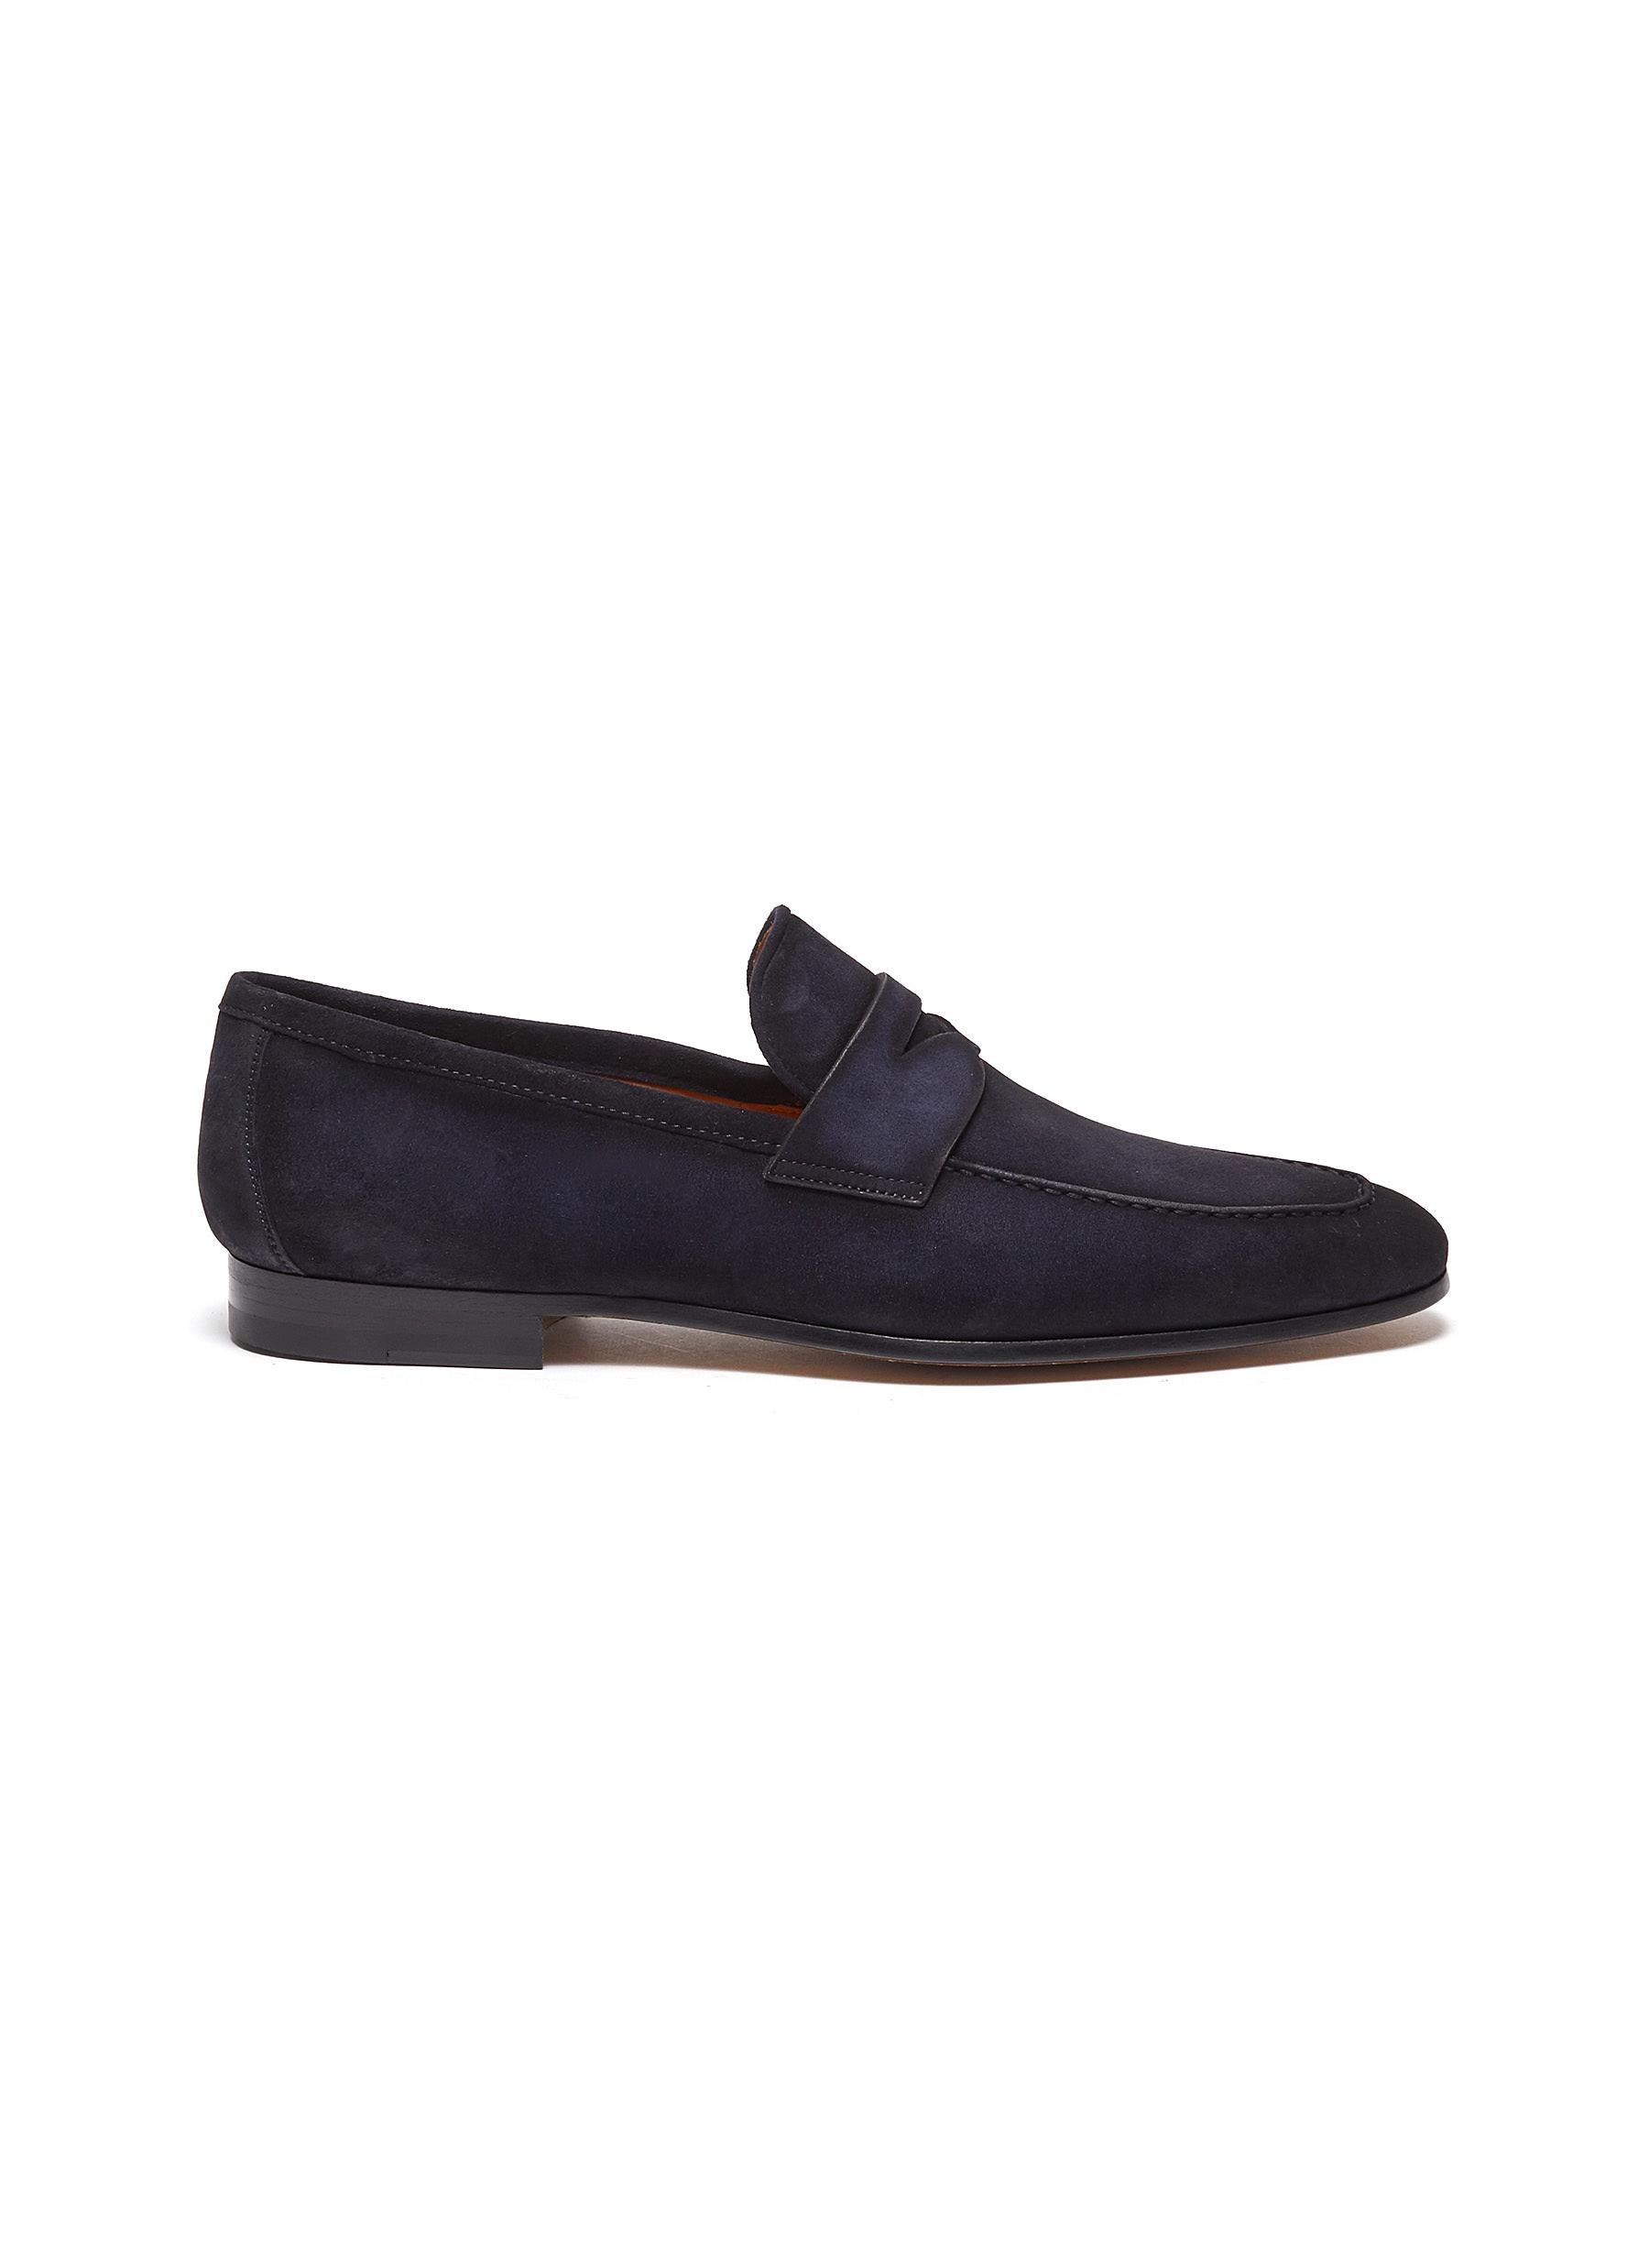 MAGNANNI | Suede penny loafers | Men